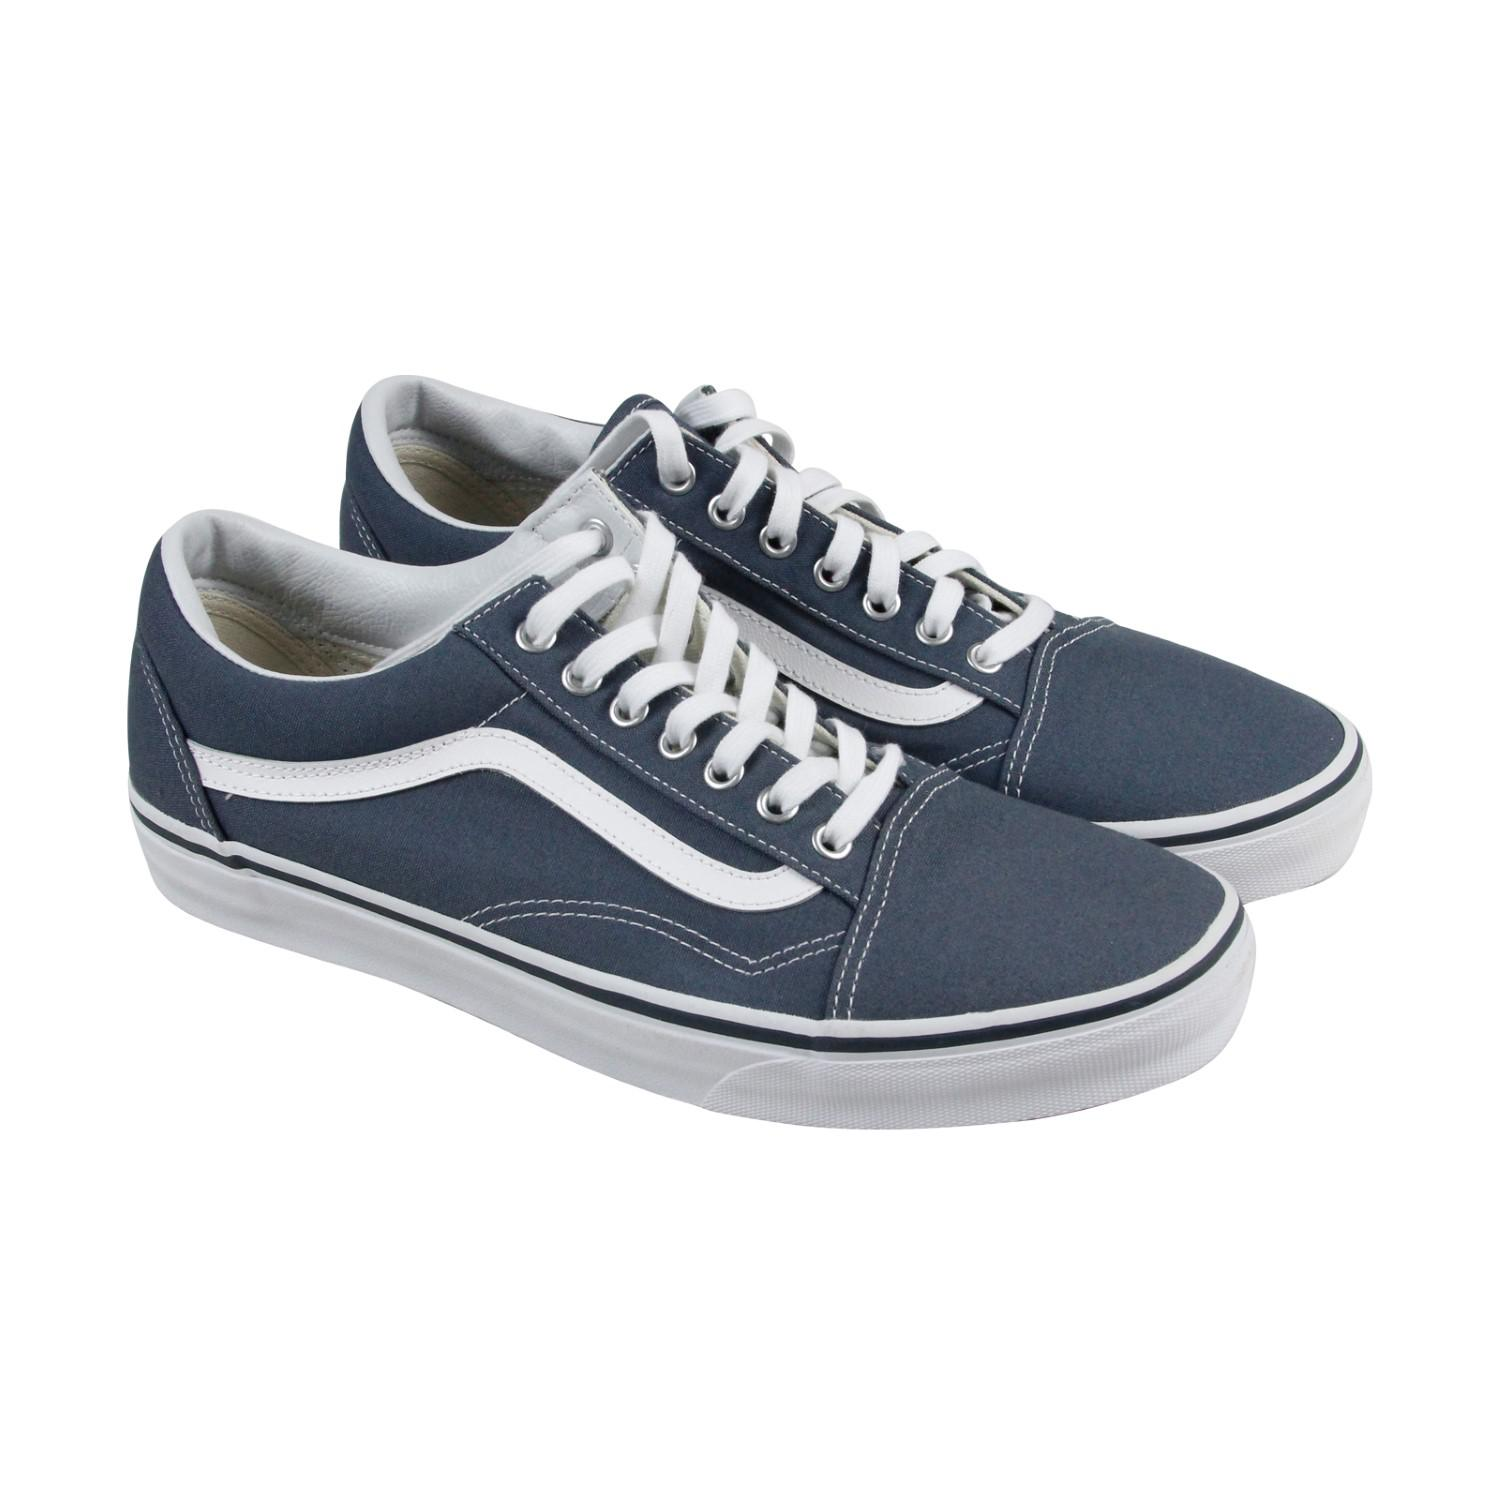 06a066bc59 Lyst - Vans Unisex Old Skool (canvas) Dark Slate true Skate Shoe ...